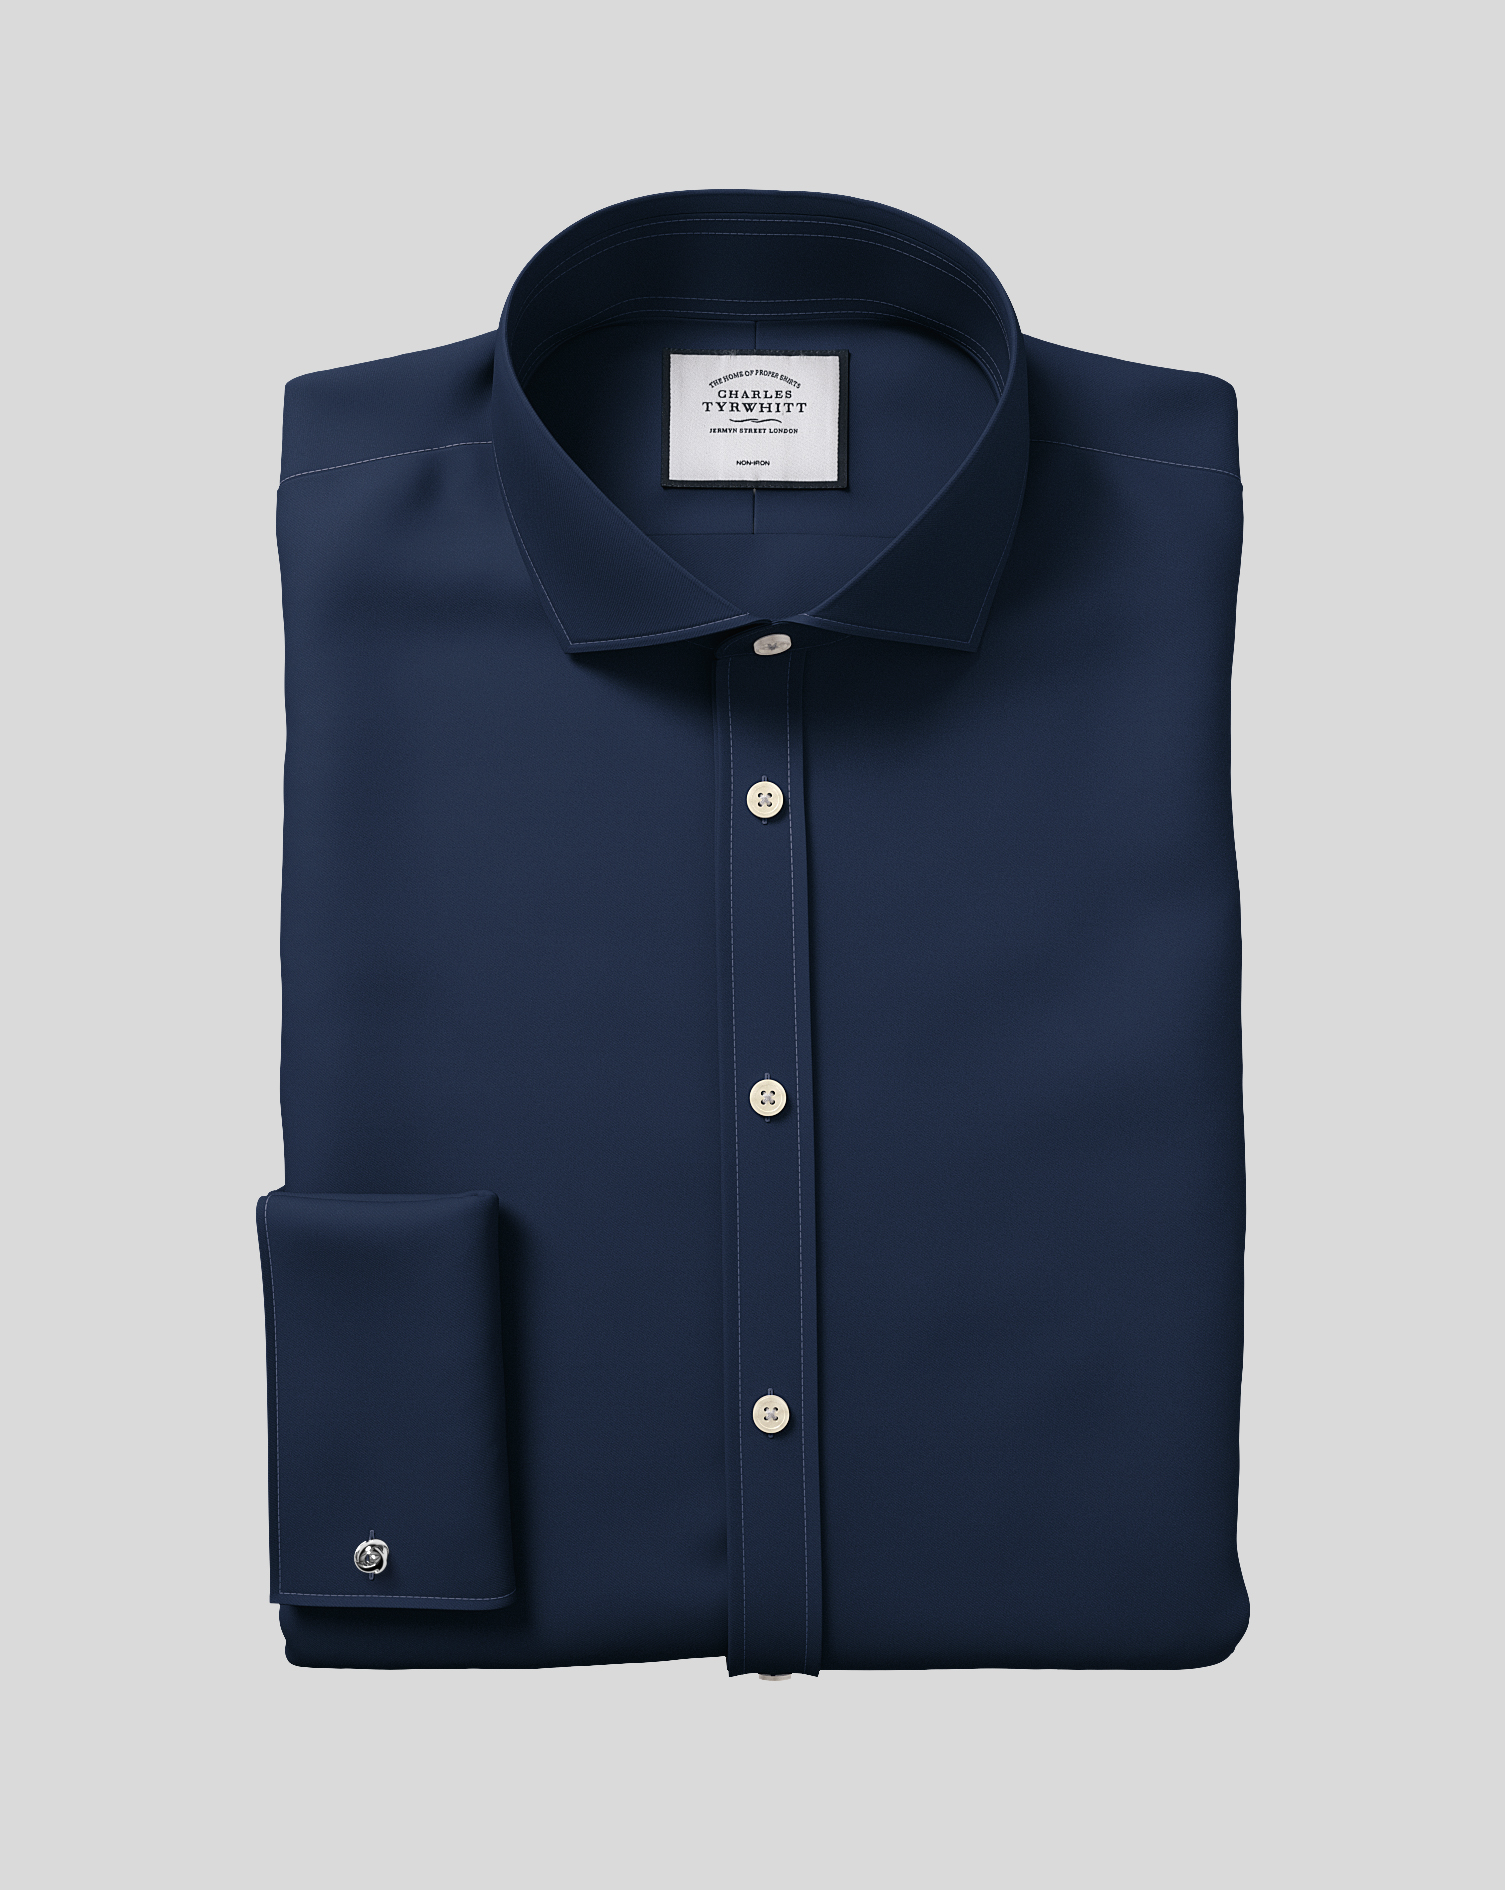 Extra Slim Fit Navy Non-Iron Twill Cotton Formal Shirt Single Cuff Size 16.5/34 by Charles Tyrwhitt